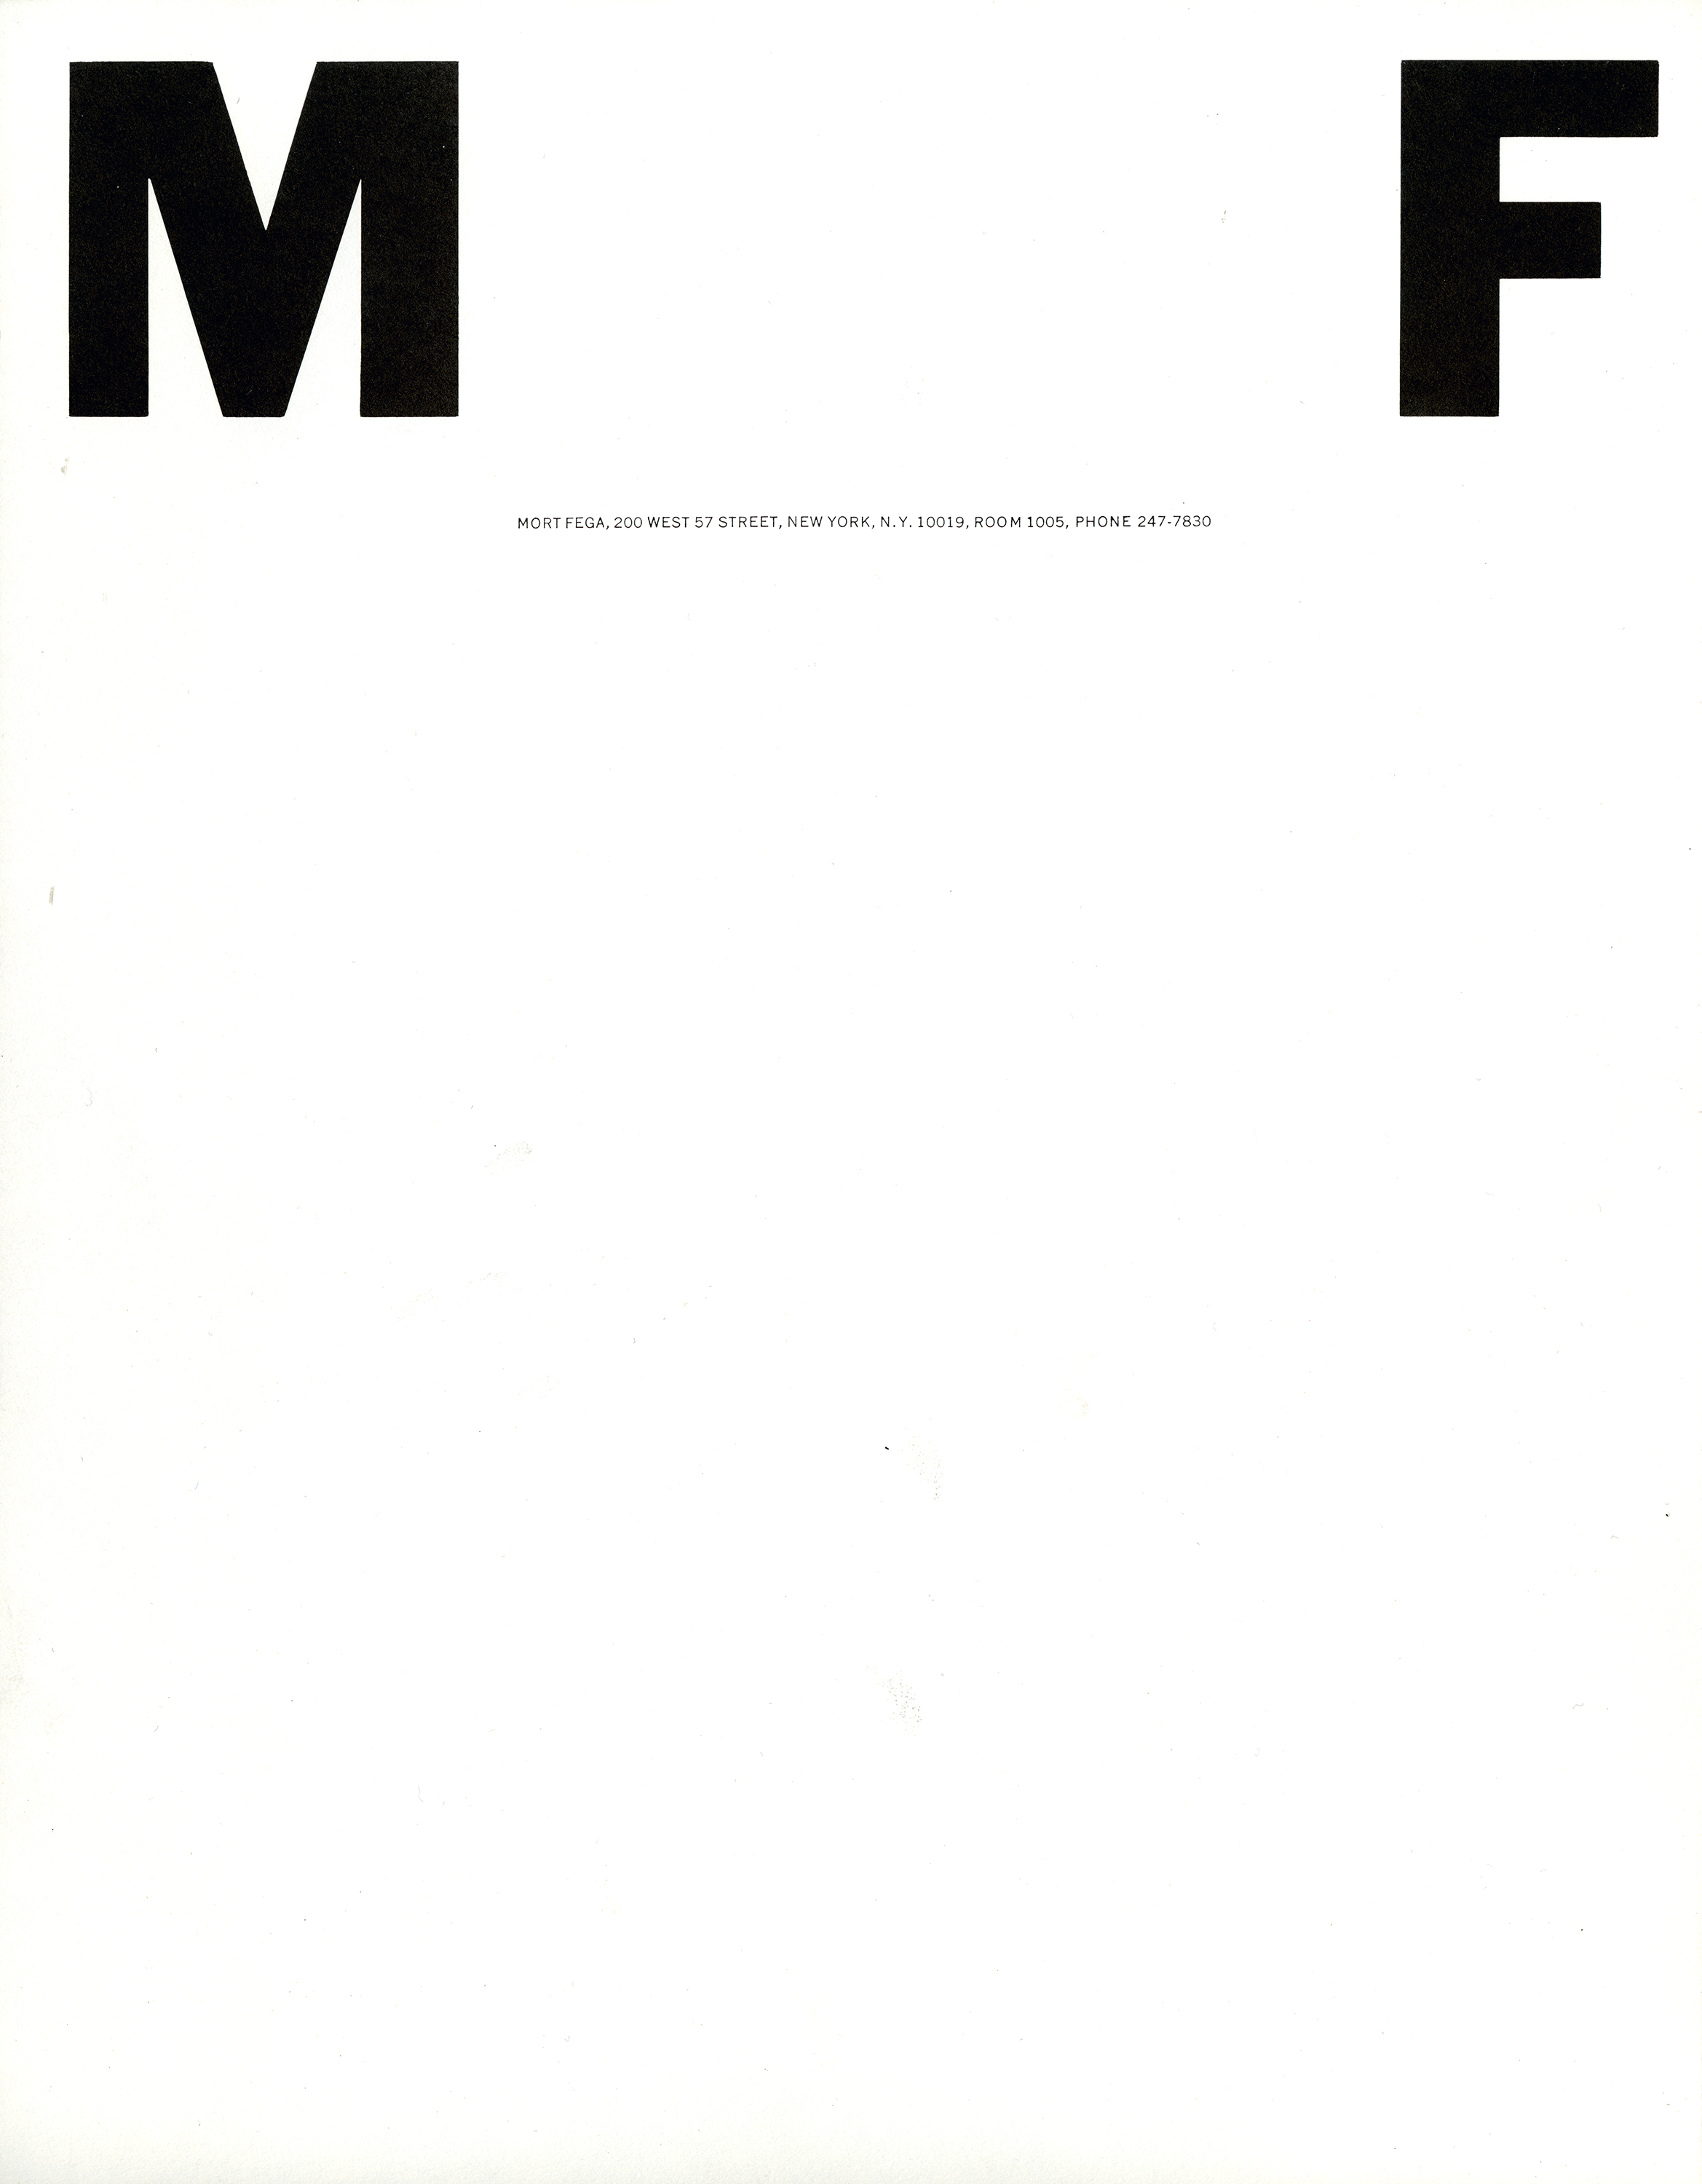 The letters M and F appear on opposite sides of the top corners; black against white background.